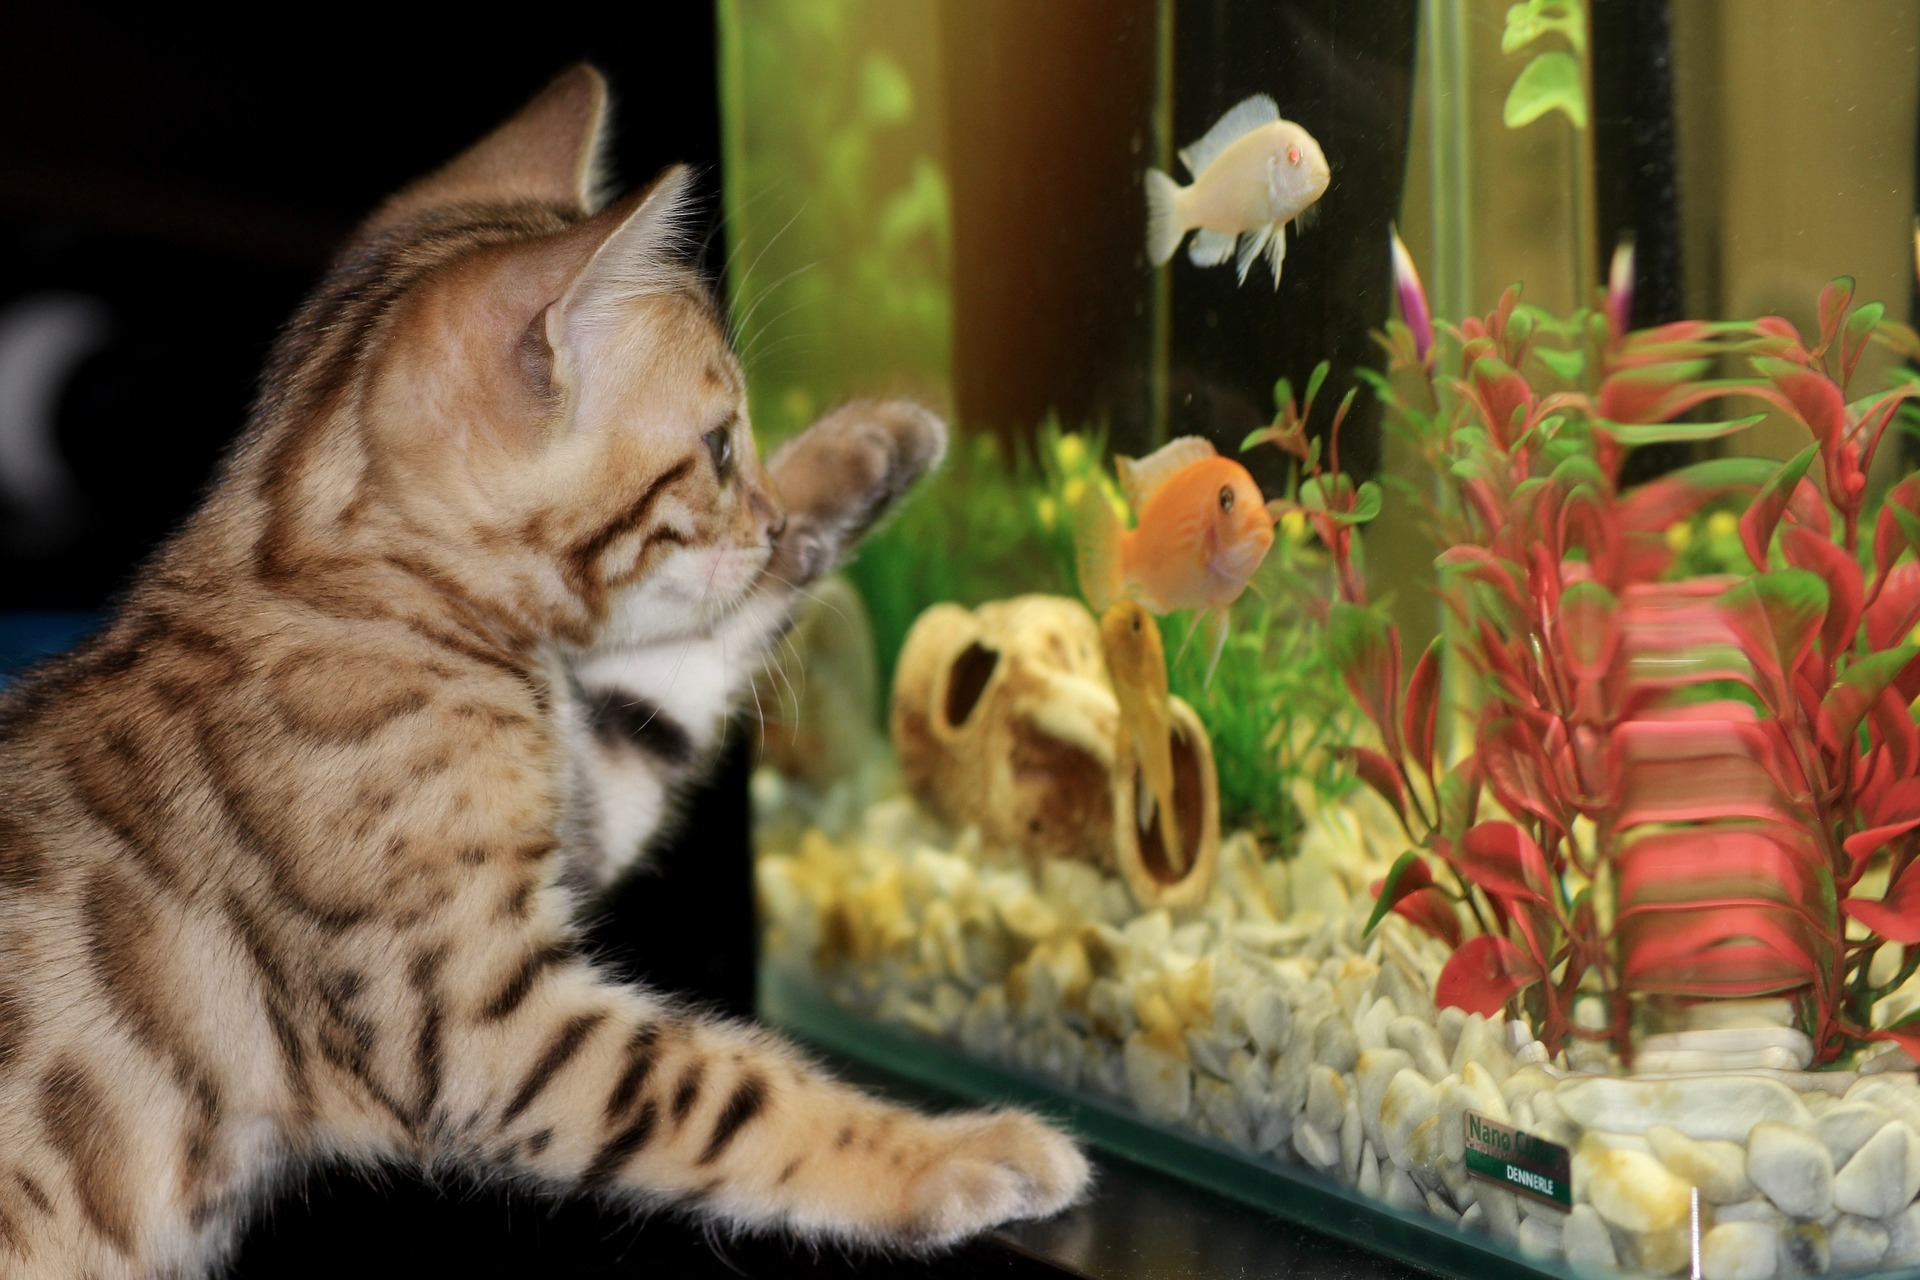 kitten watching 55 gallon fish tank aquarium